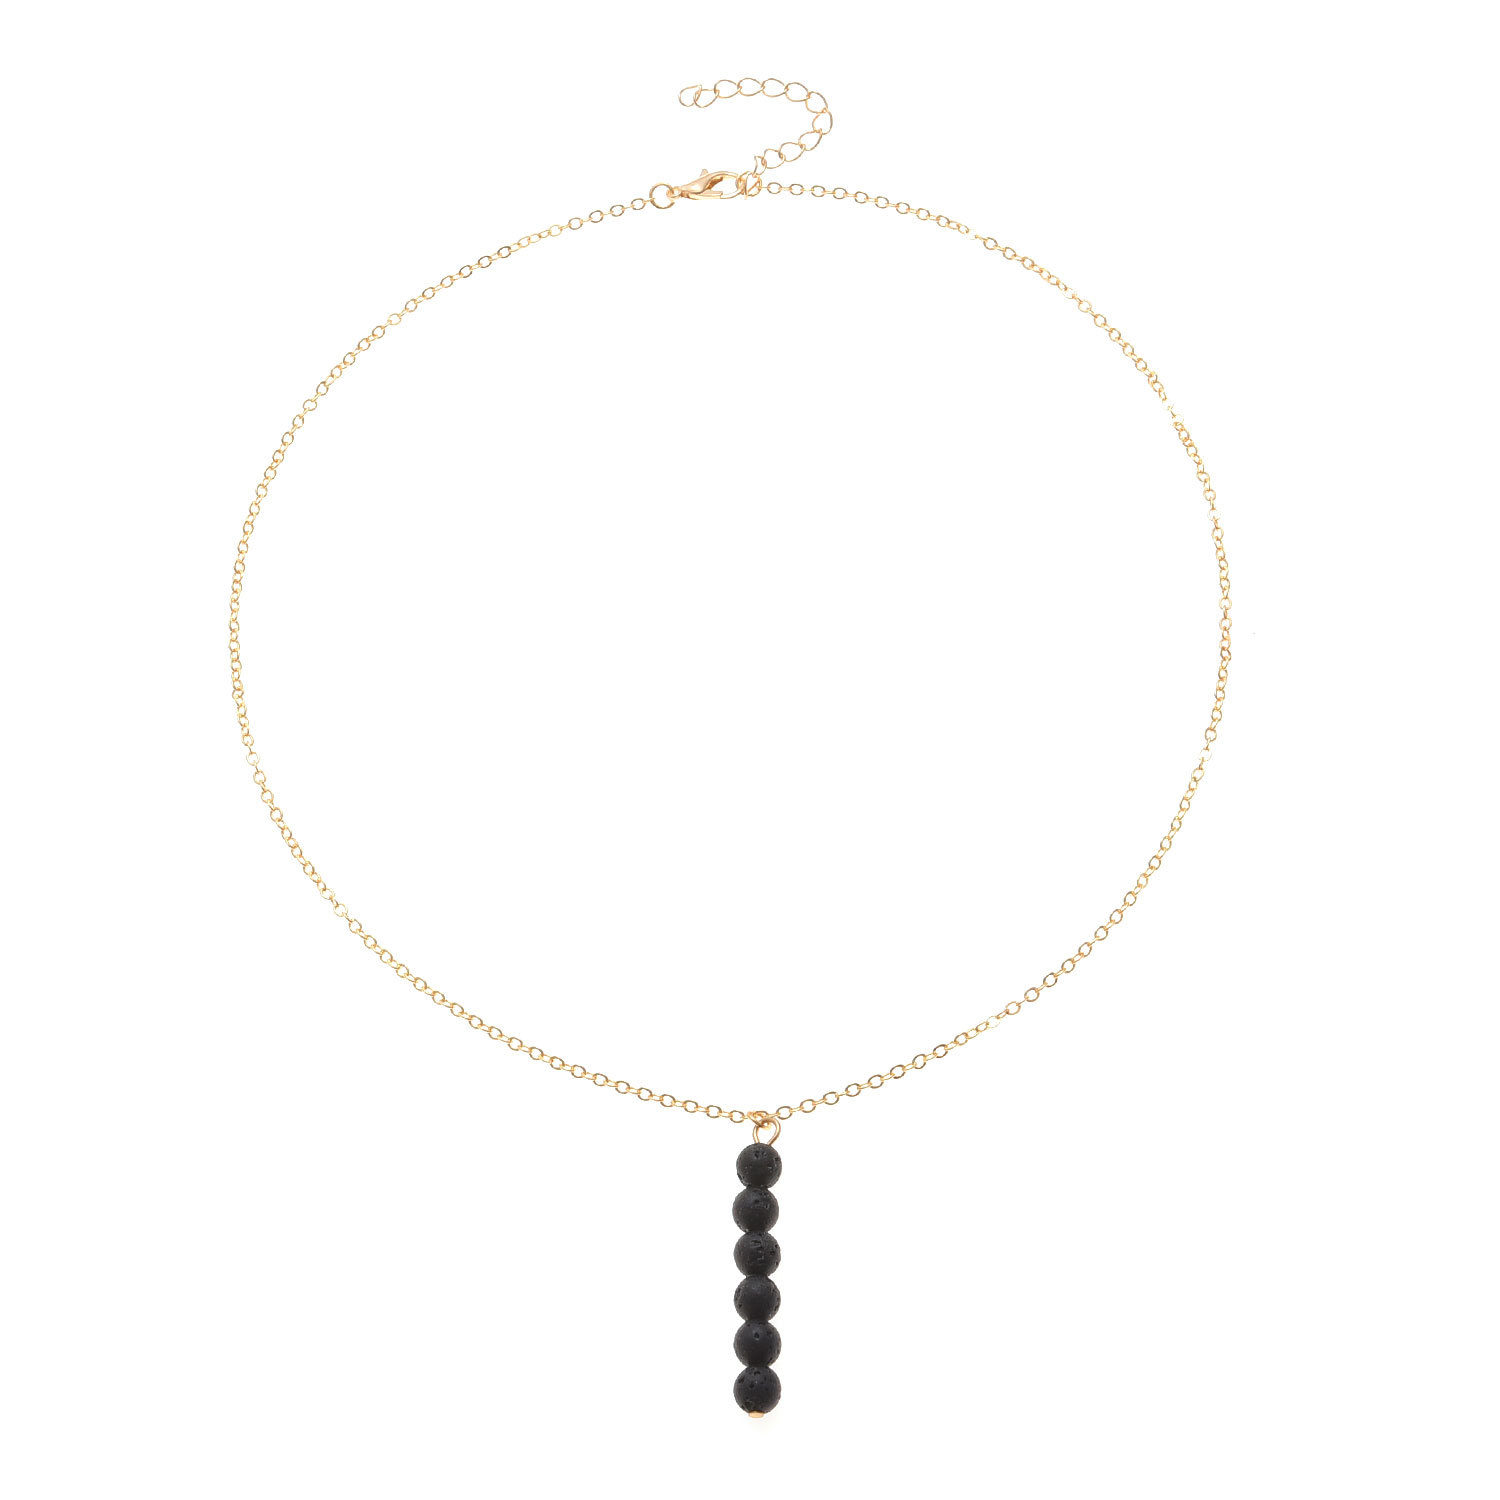 New Arrival Black Crystal Beads Tassel Pendant Necklace Ladies Personality Simple Clavicle Chain Women Collares Jewelry XL436